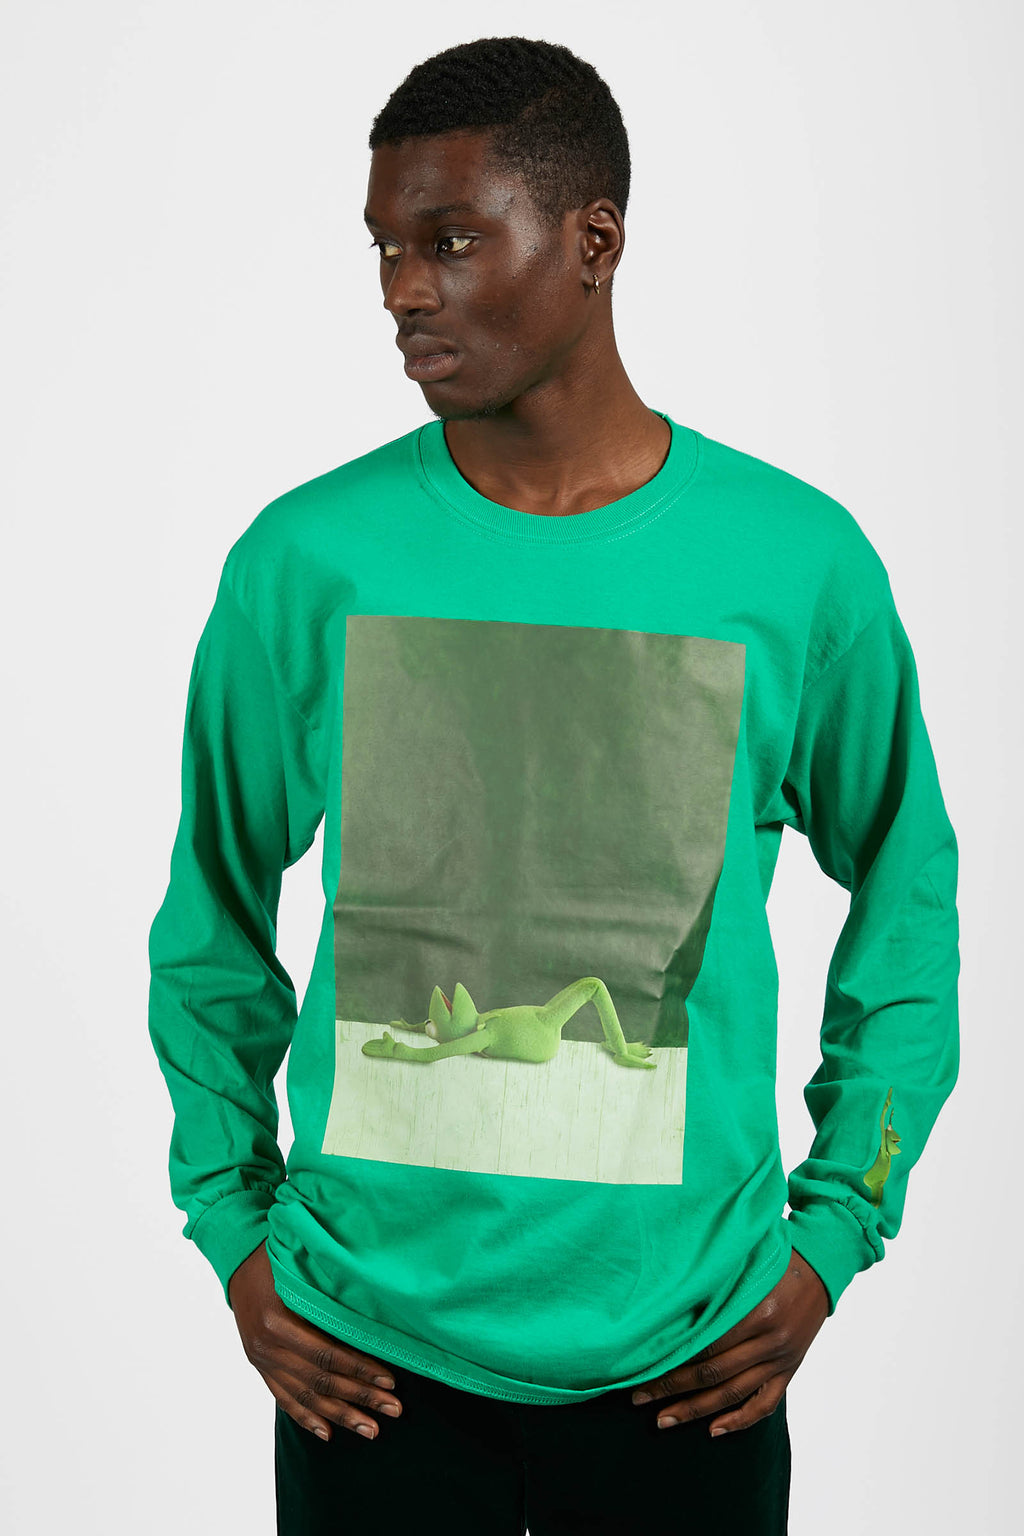 Kenny Schachter 'Kermit' Graphic T-Shirt